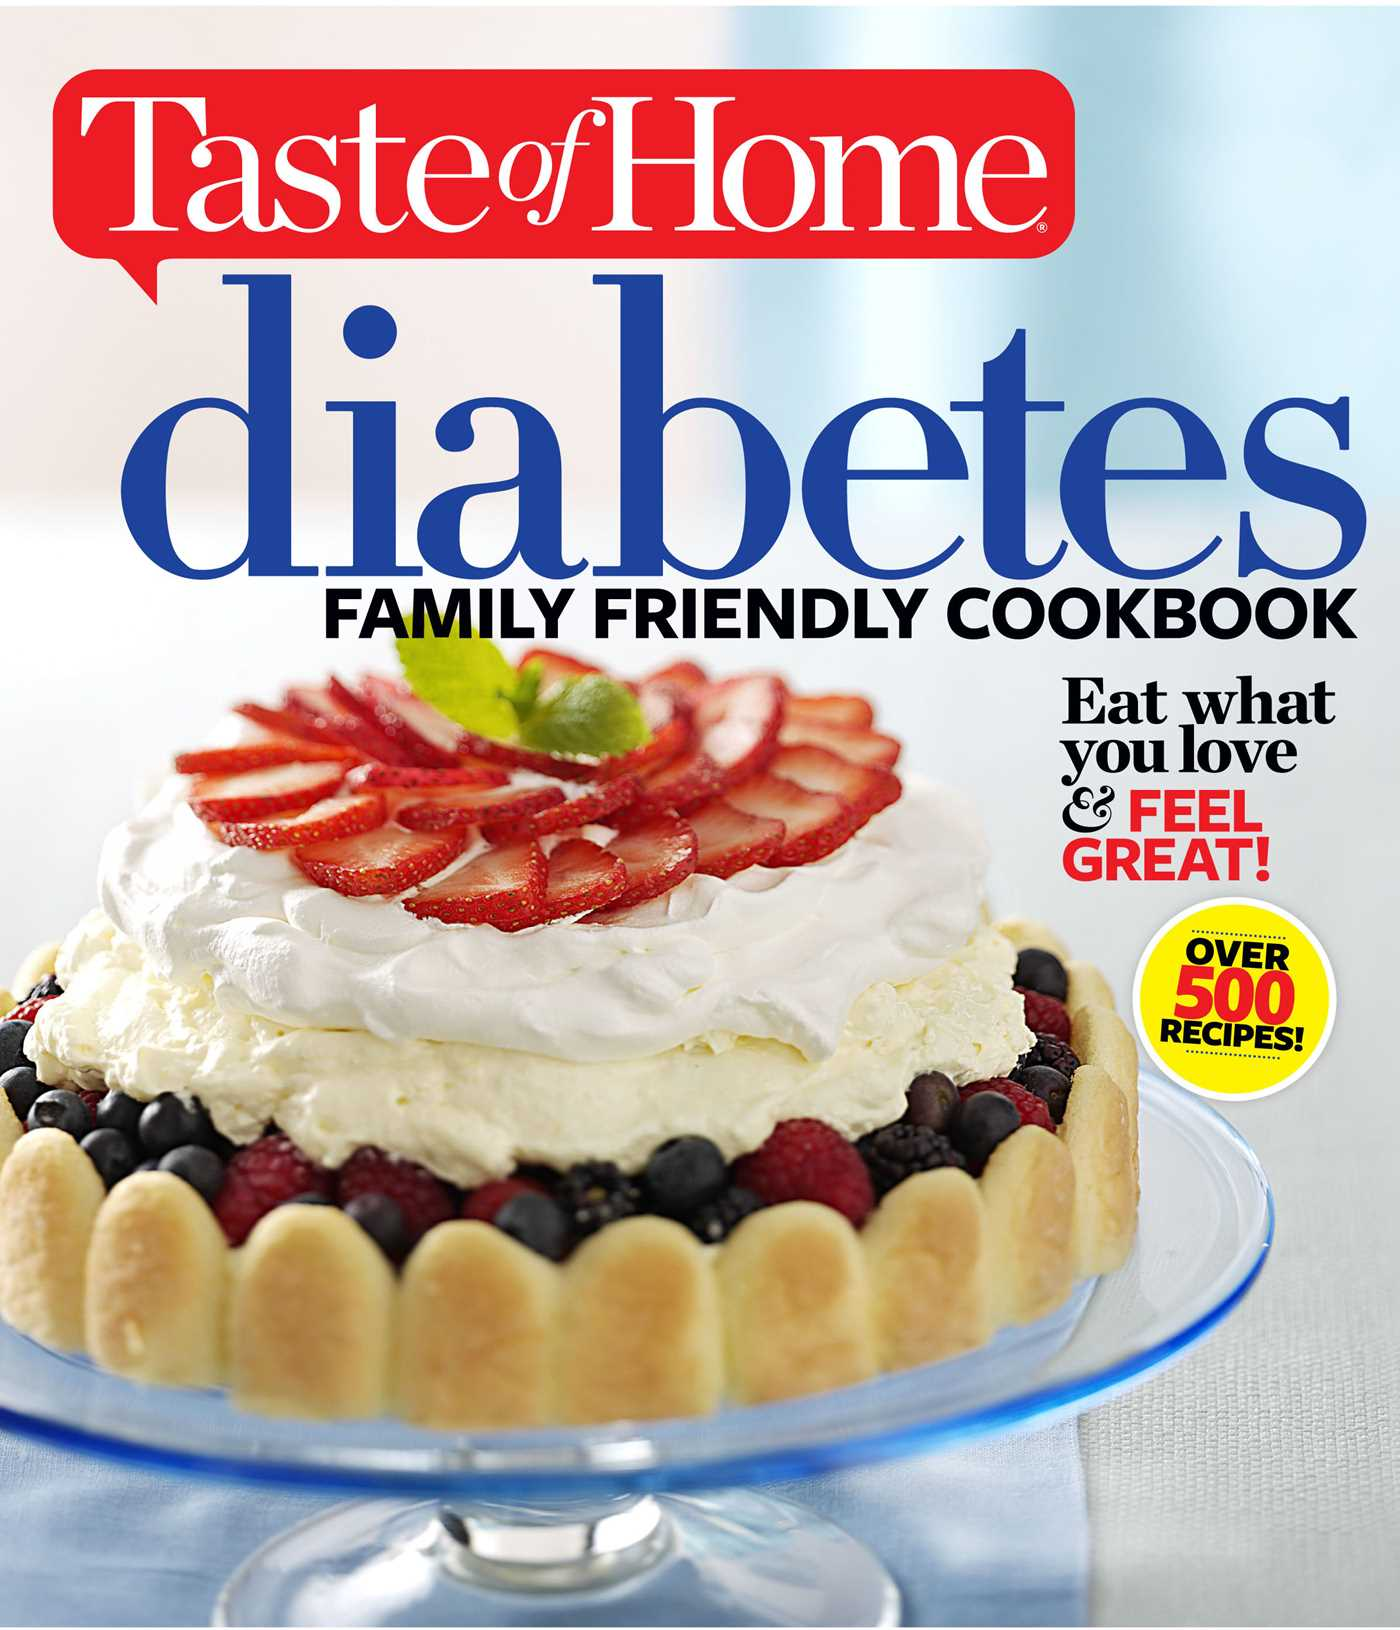 Taste of home diabetes family friendly cookbook ebook by taste of book cover image jpg taste of home diabetes family friendly cookbook ebook 9781617652677 fandeluxe